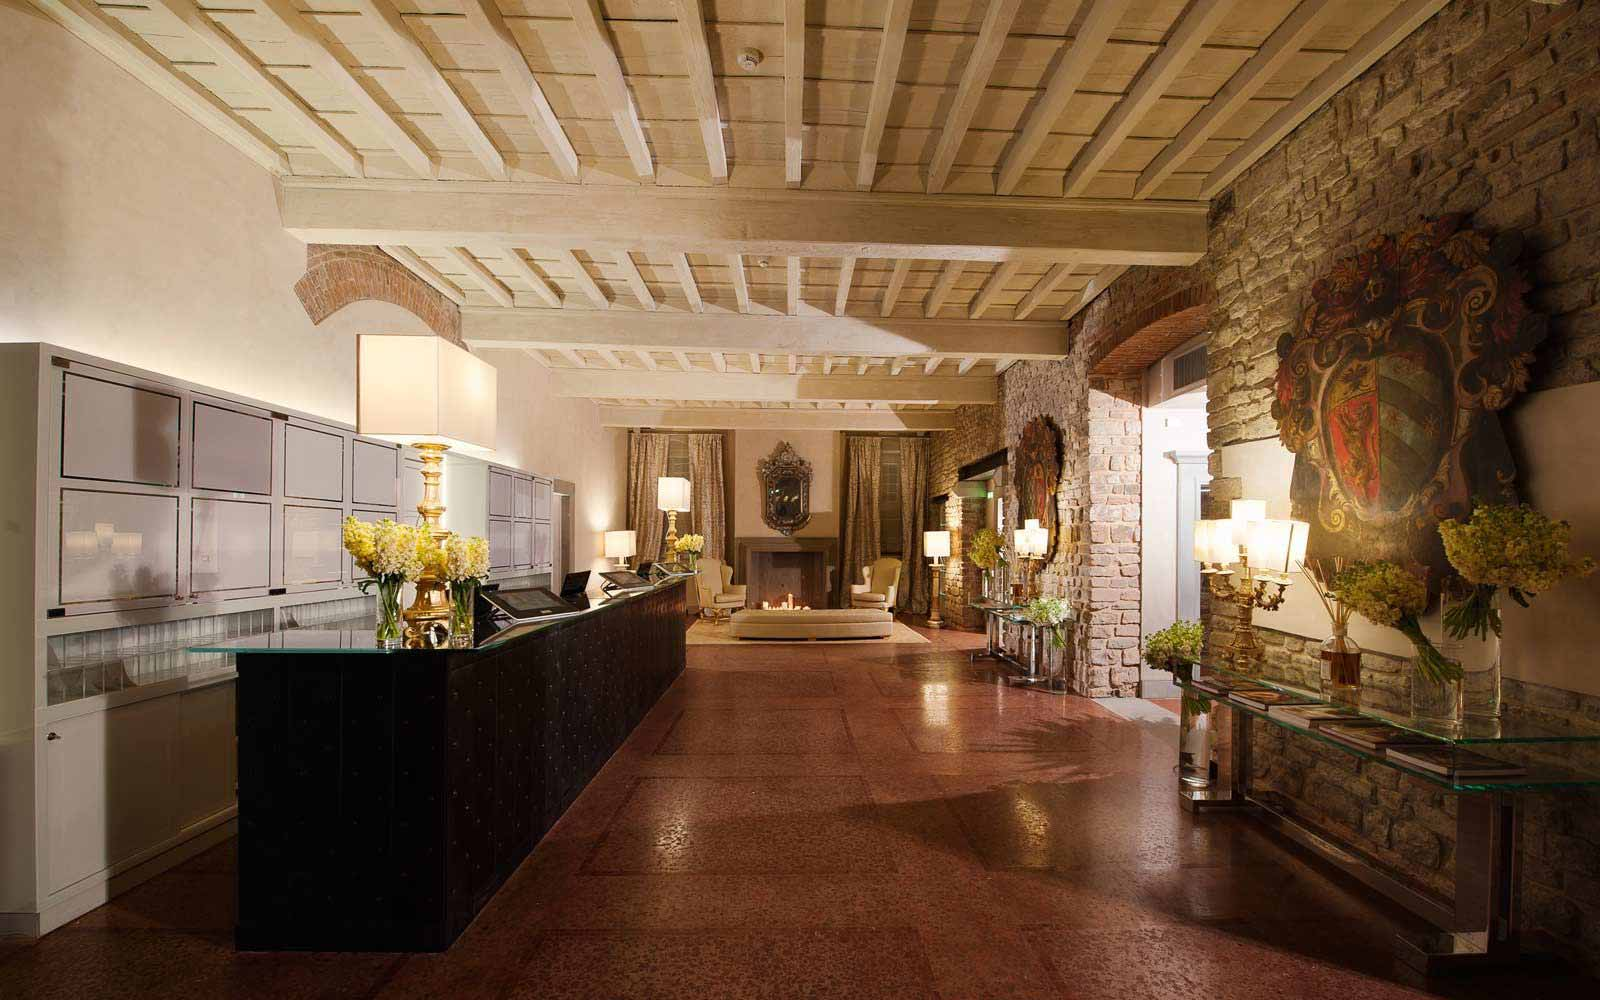 Reception hall at Hotel Brunelleschi